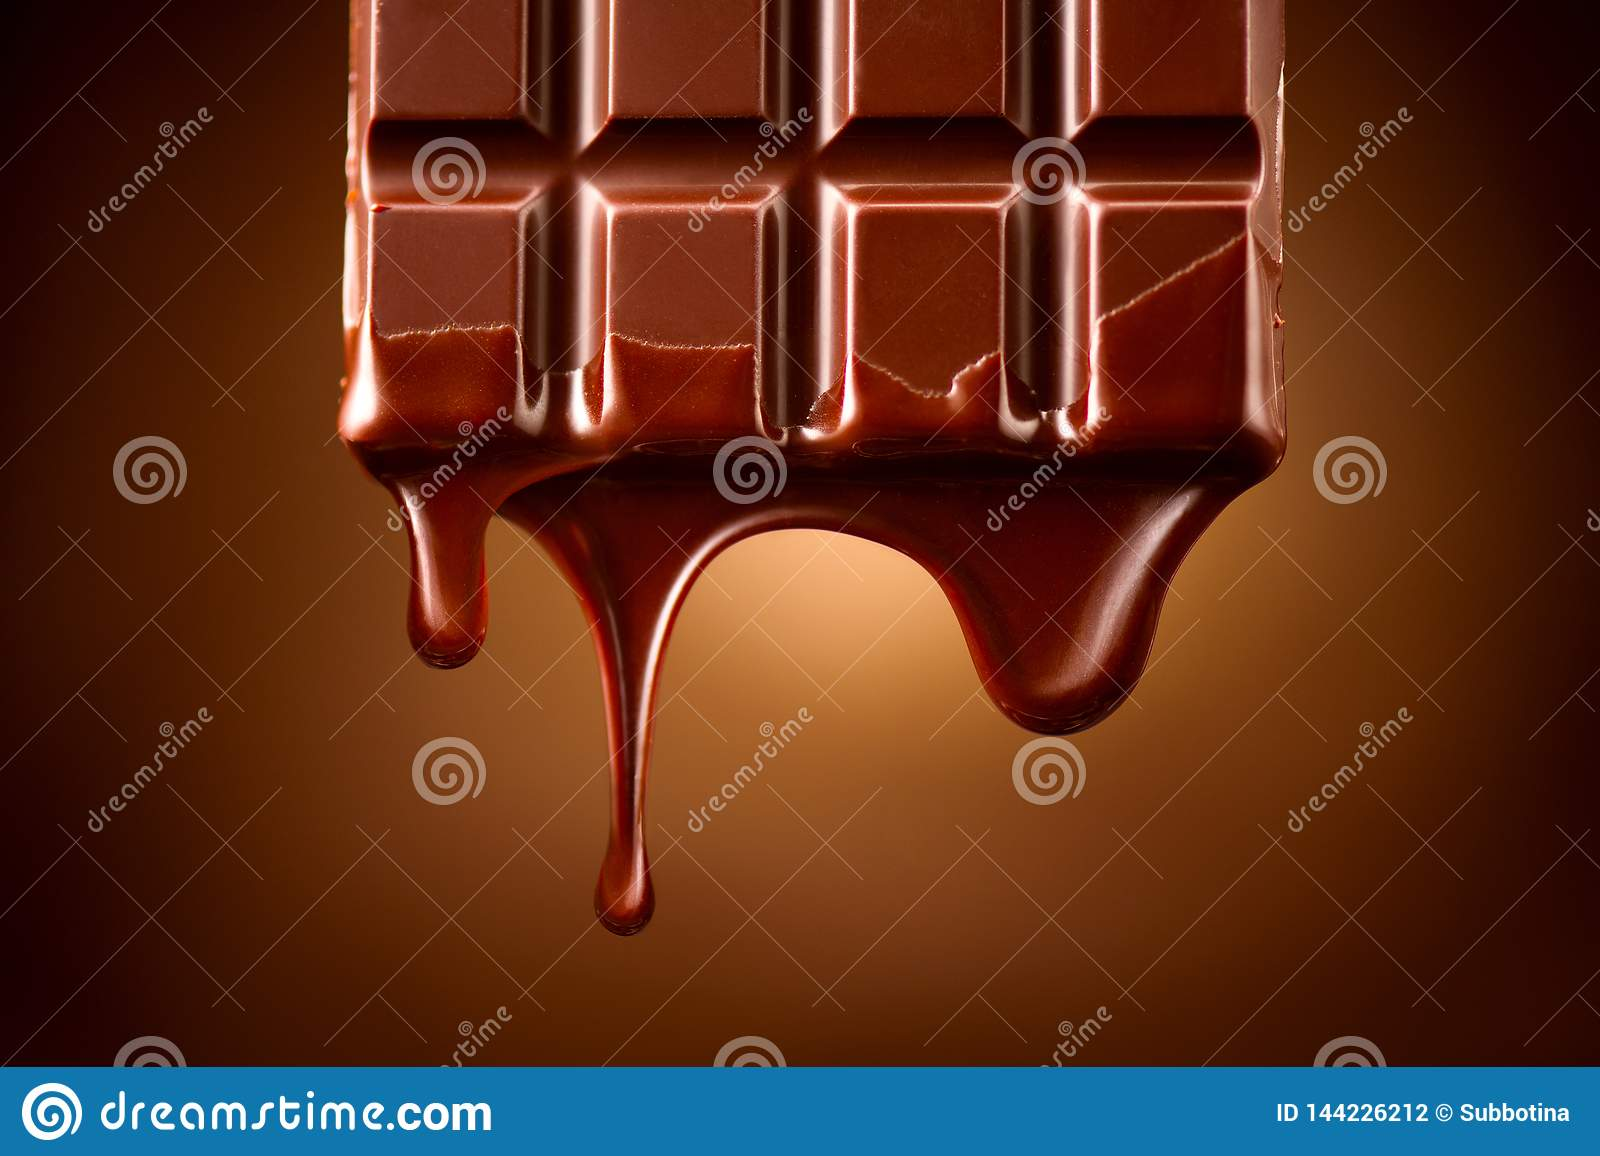 Chocolate bar with melted dark chocolate dripping over dark brown background. Confectionery concept backdrop. Melted chocolate